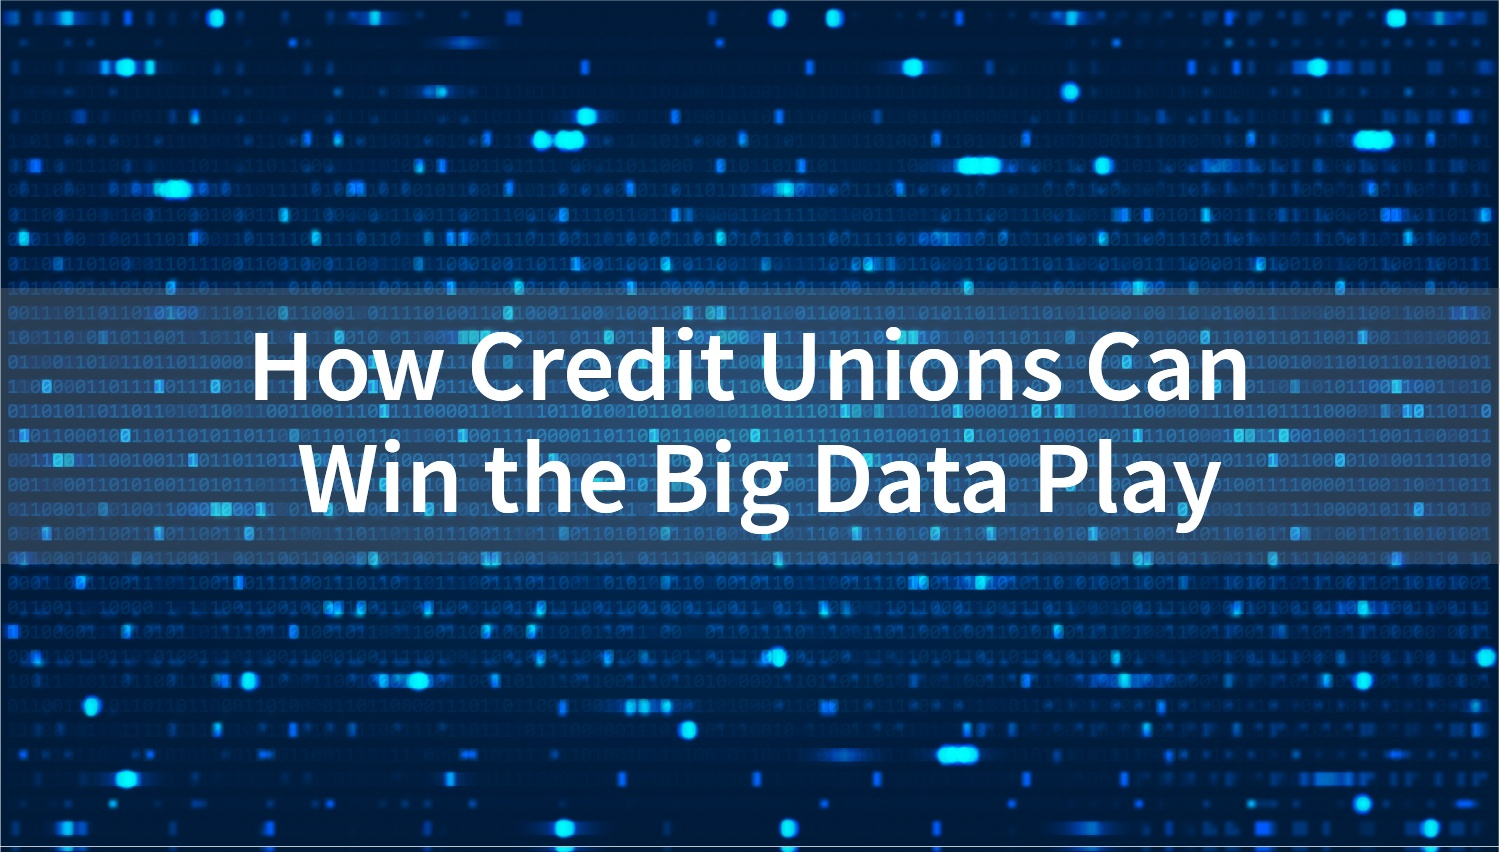 How-Credit-Unions-can-win-the-big-data-play